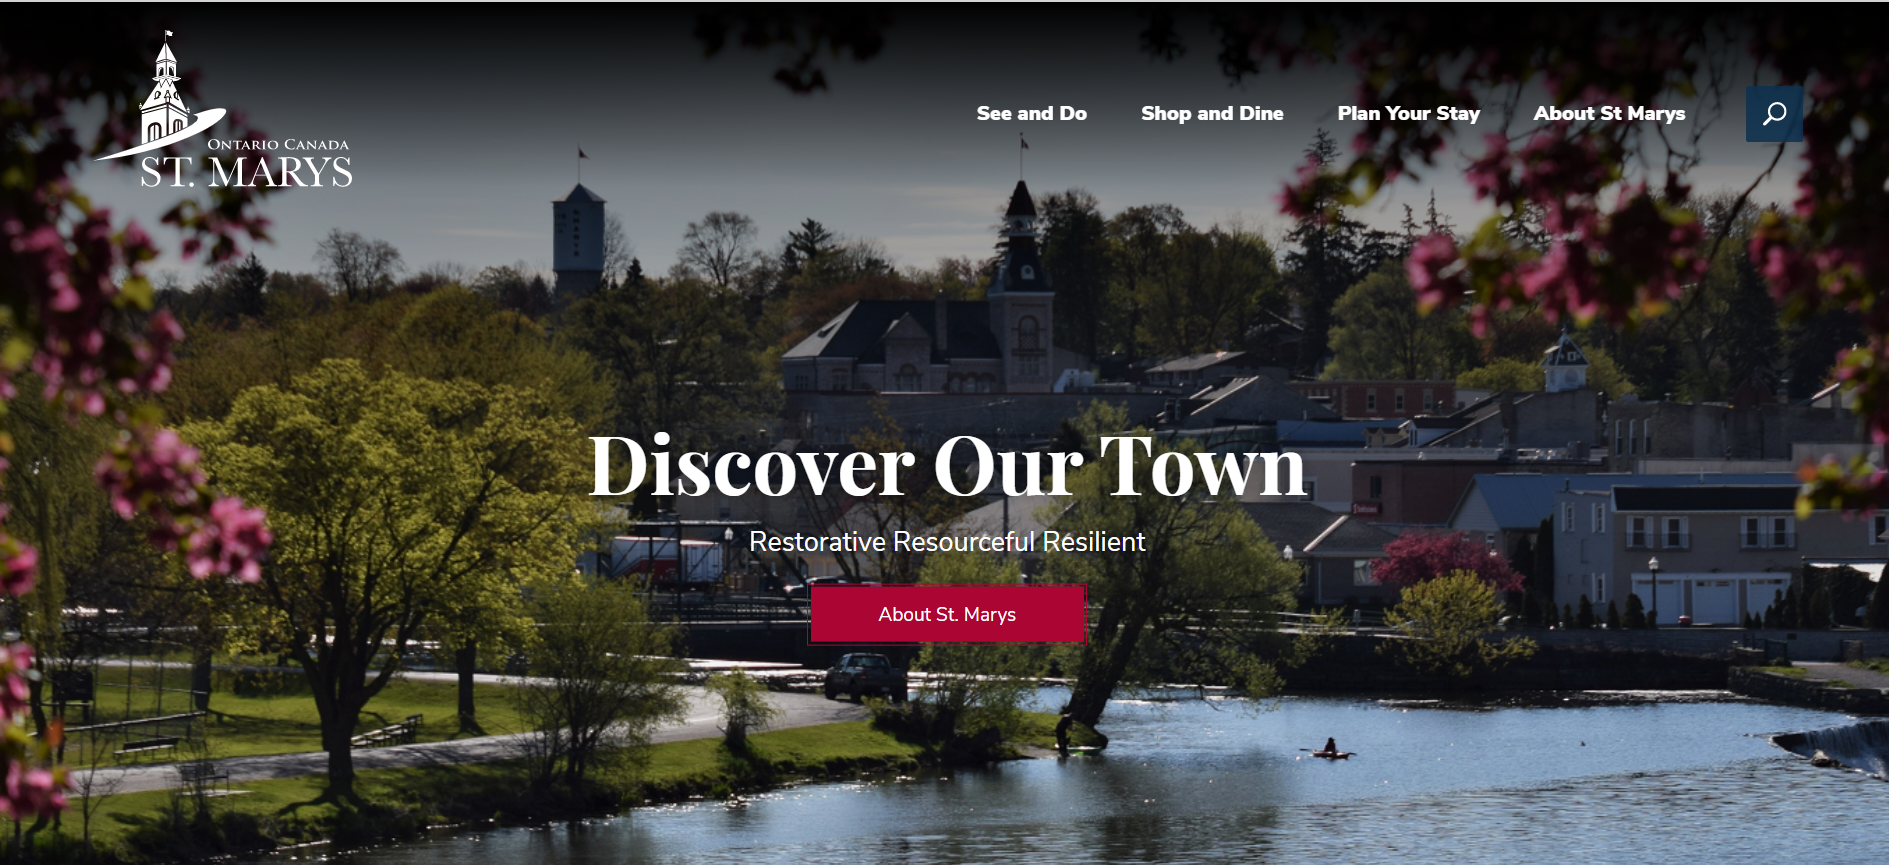 Home page of new tourism site